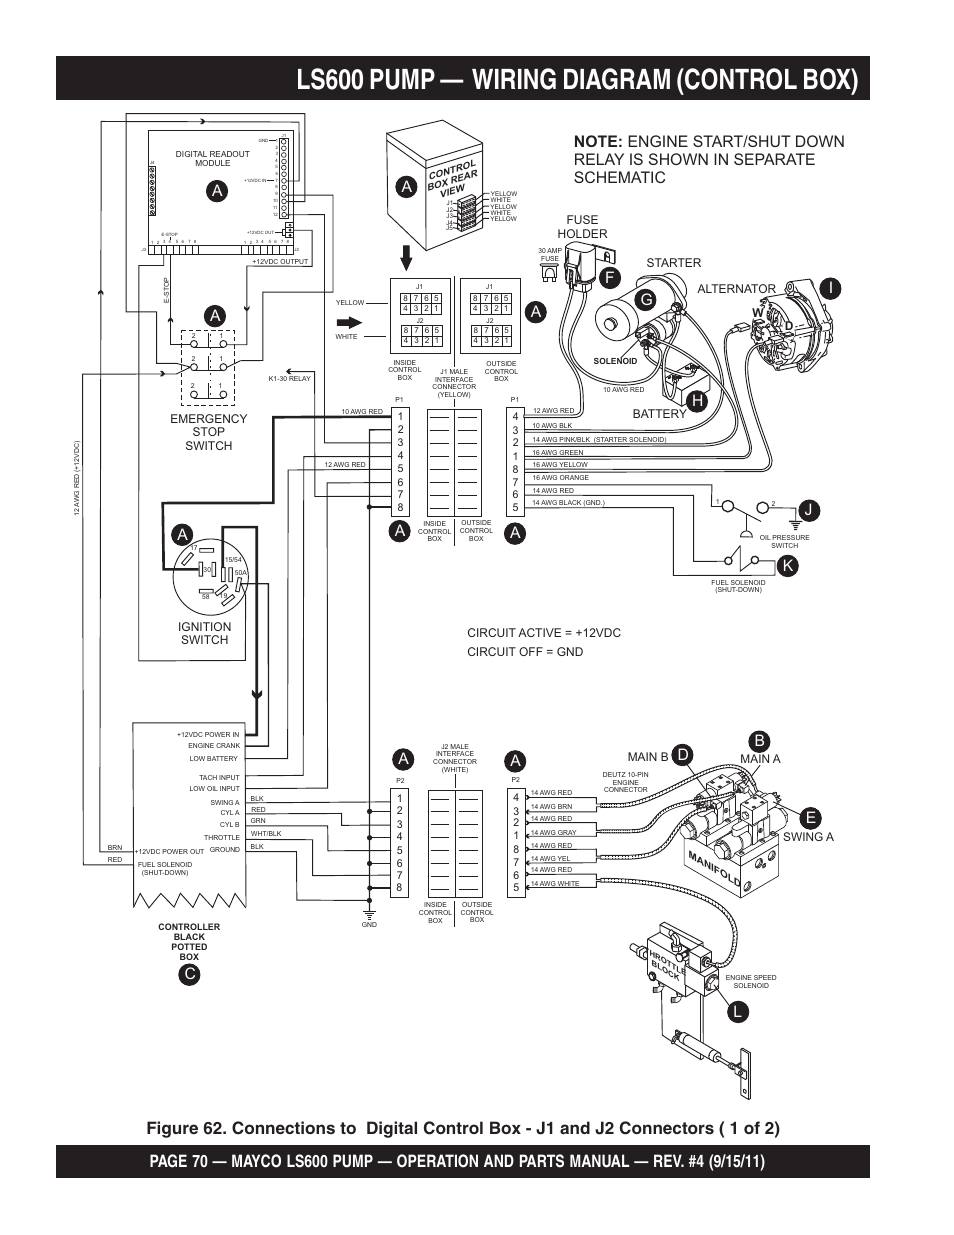 3000gt Wiring Diagram Charging 2007 Mazda 6 Engine Diagram ... on obd0 to obd1 conversion harness, fall protection harness, engine harness, radio harness, amp bypass harness, suspension harness, dog harness, electrical harness, nakamichi harness, pony harness, maxi-seal harness, alpine stereo harness, oxygen sensor extension harness, safety harness, cable harness, battery harness, pet harness,